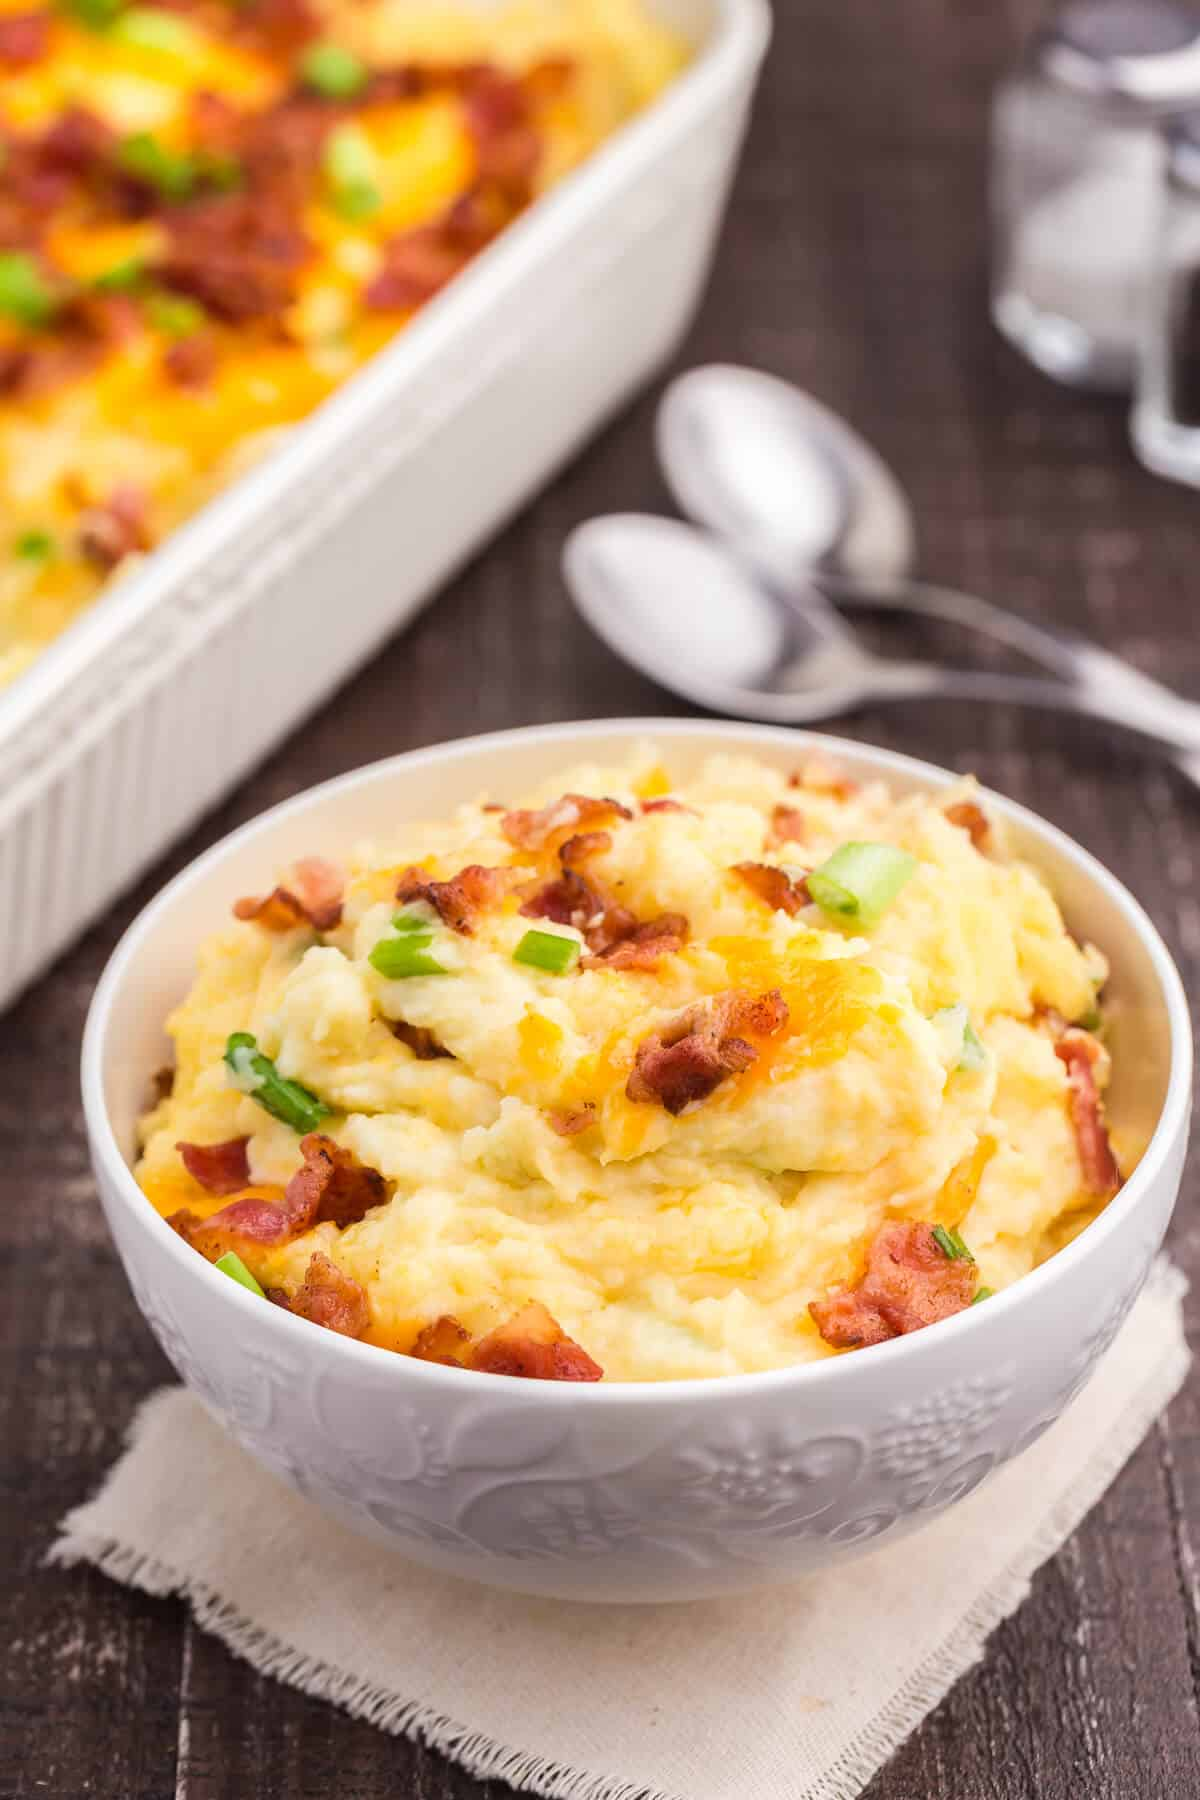 Loaded Mashed Potatoes - The ultimate comfort food side dish recipe. This homemade casserole is extra indulgent with loads of cheese, bacon and sour cream.